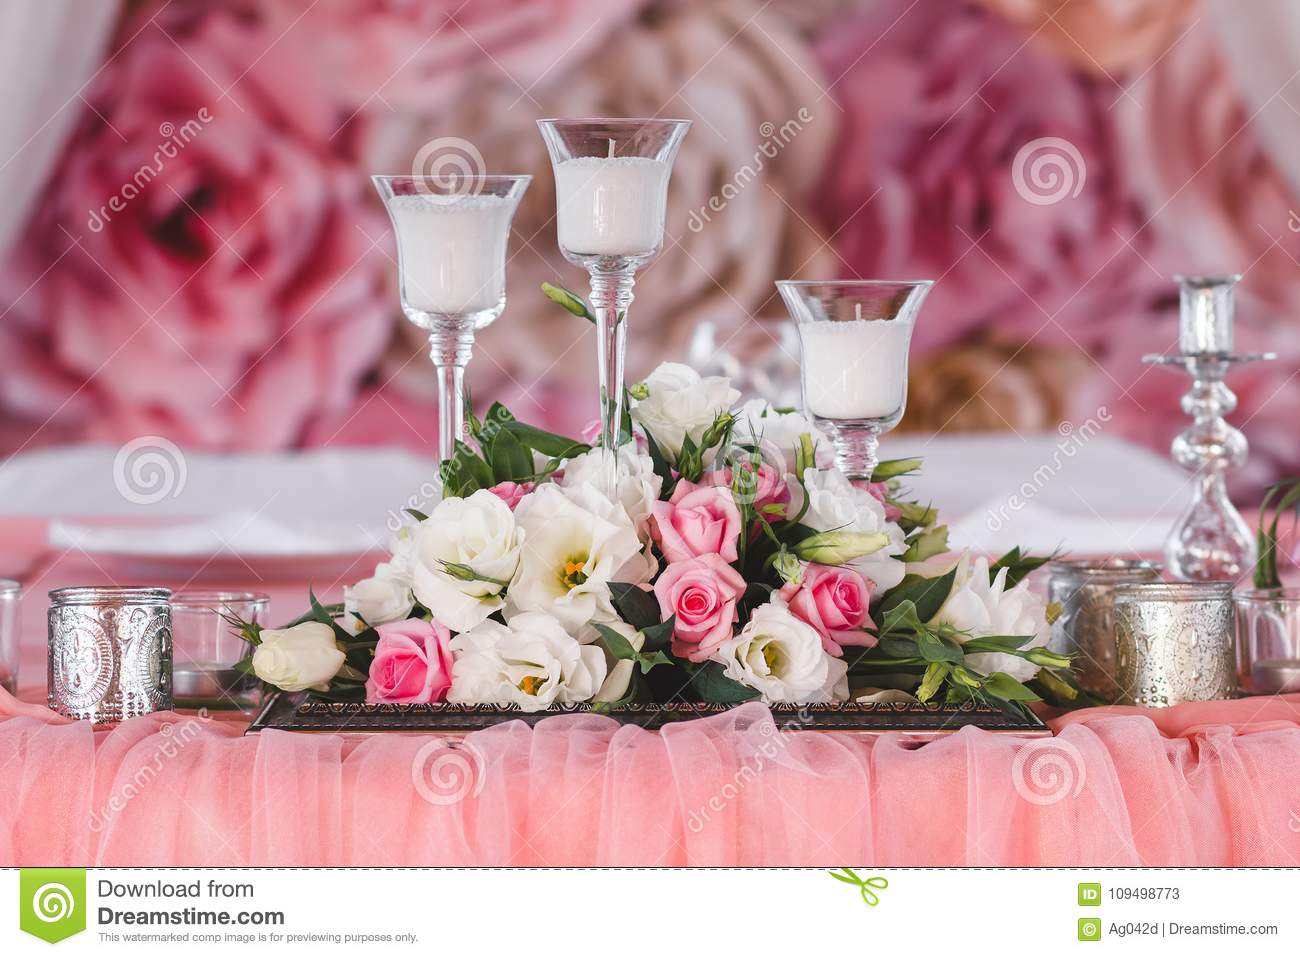 Wedding Table Decorated With Fresh Flowers Candles And Silver